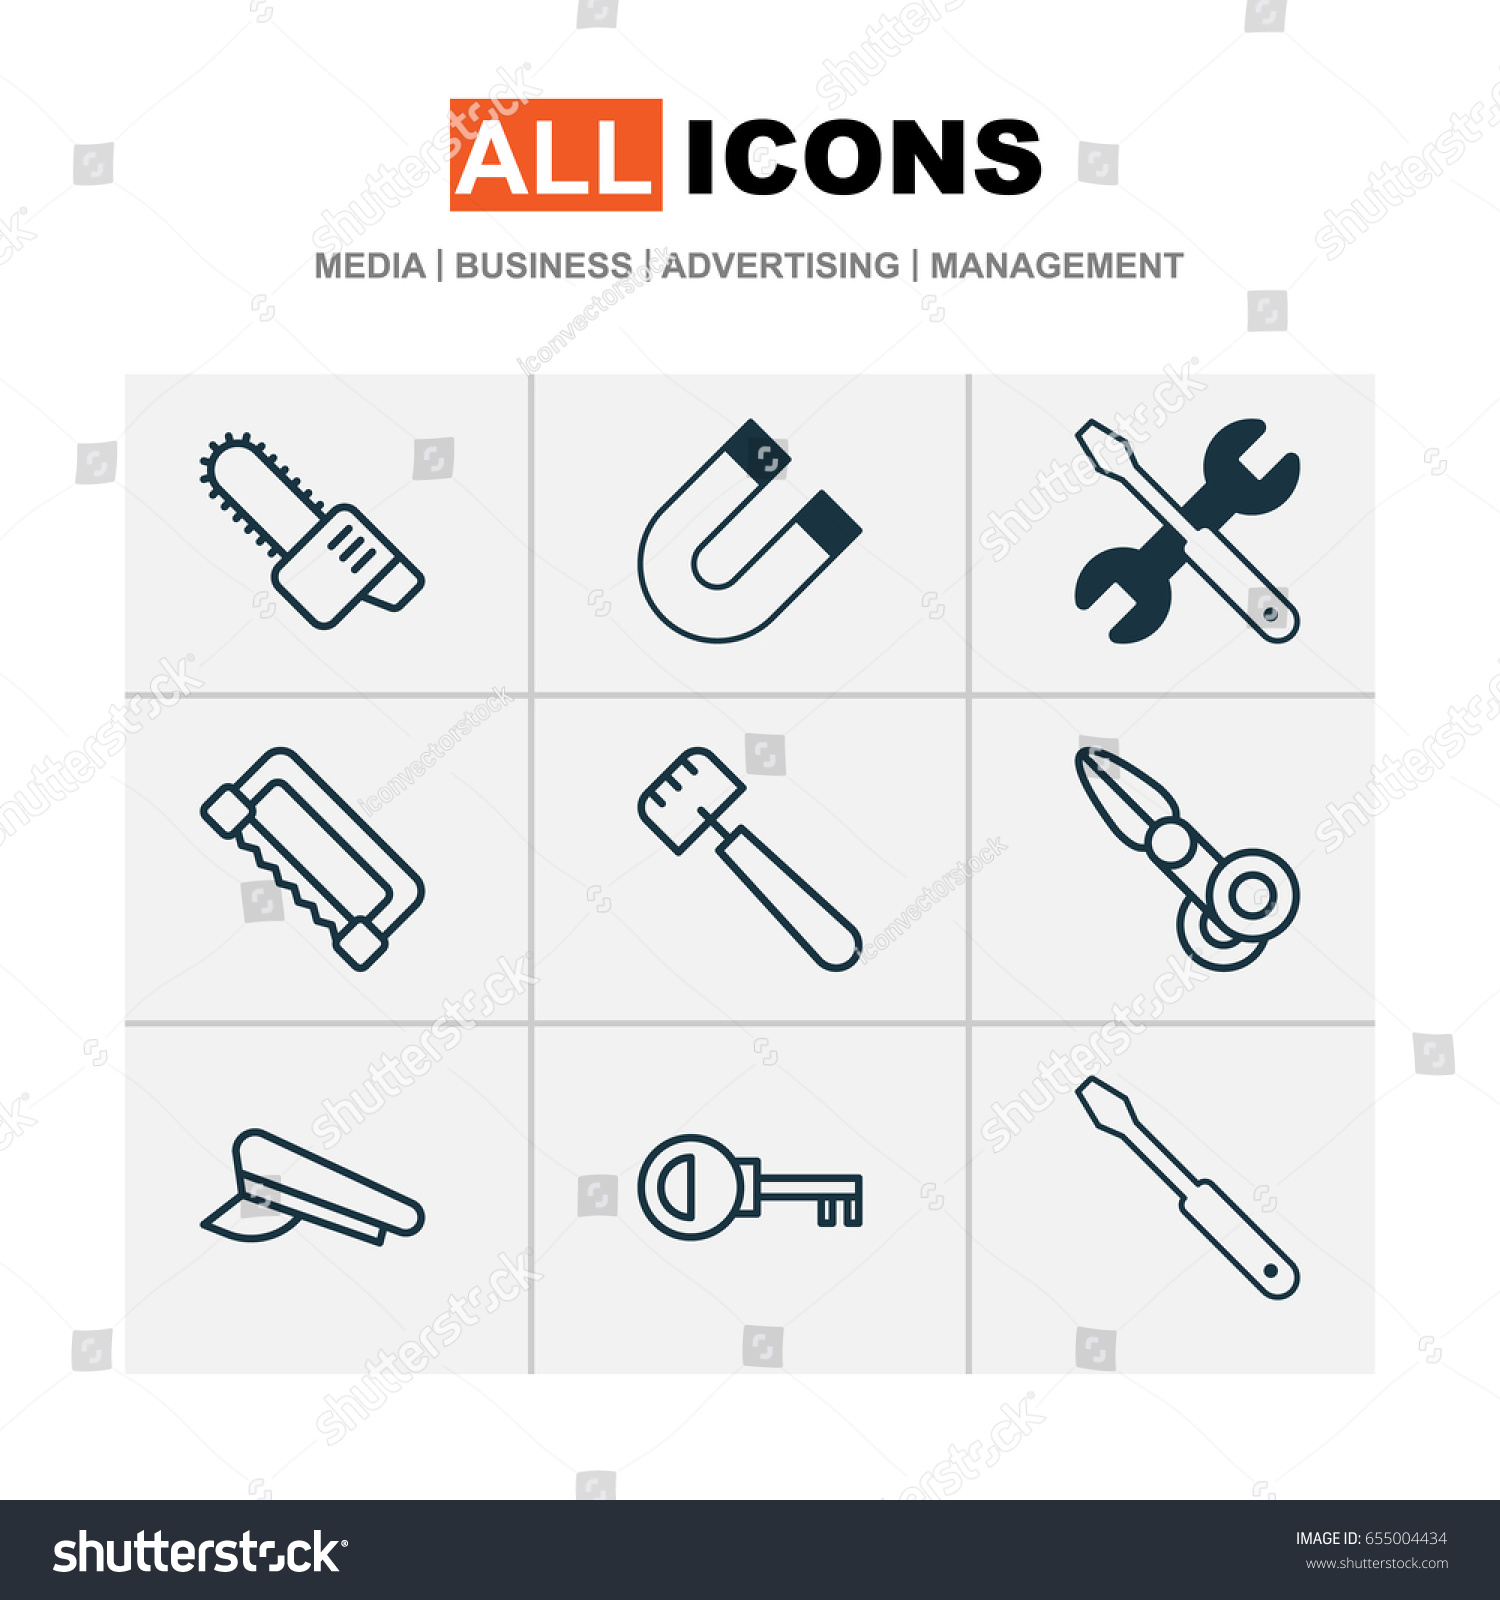 Apparatus icons set collection clippers carpentry stock vector apparatus icons set collection of clippers carpentry gasoline cutter and other elements buycottarizona Images